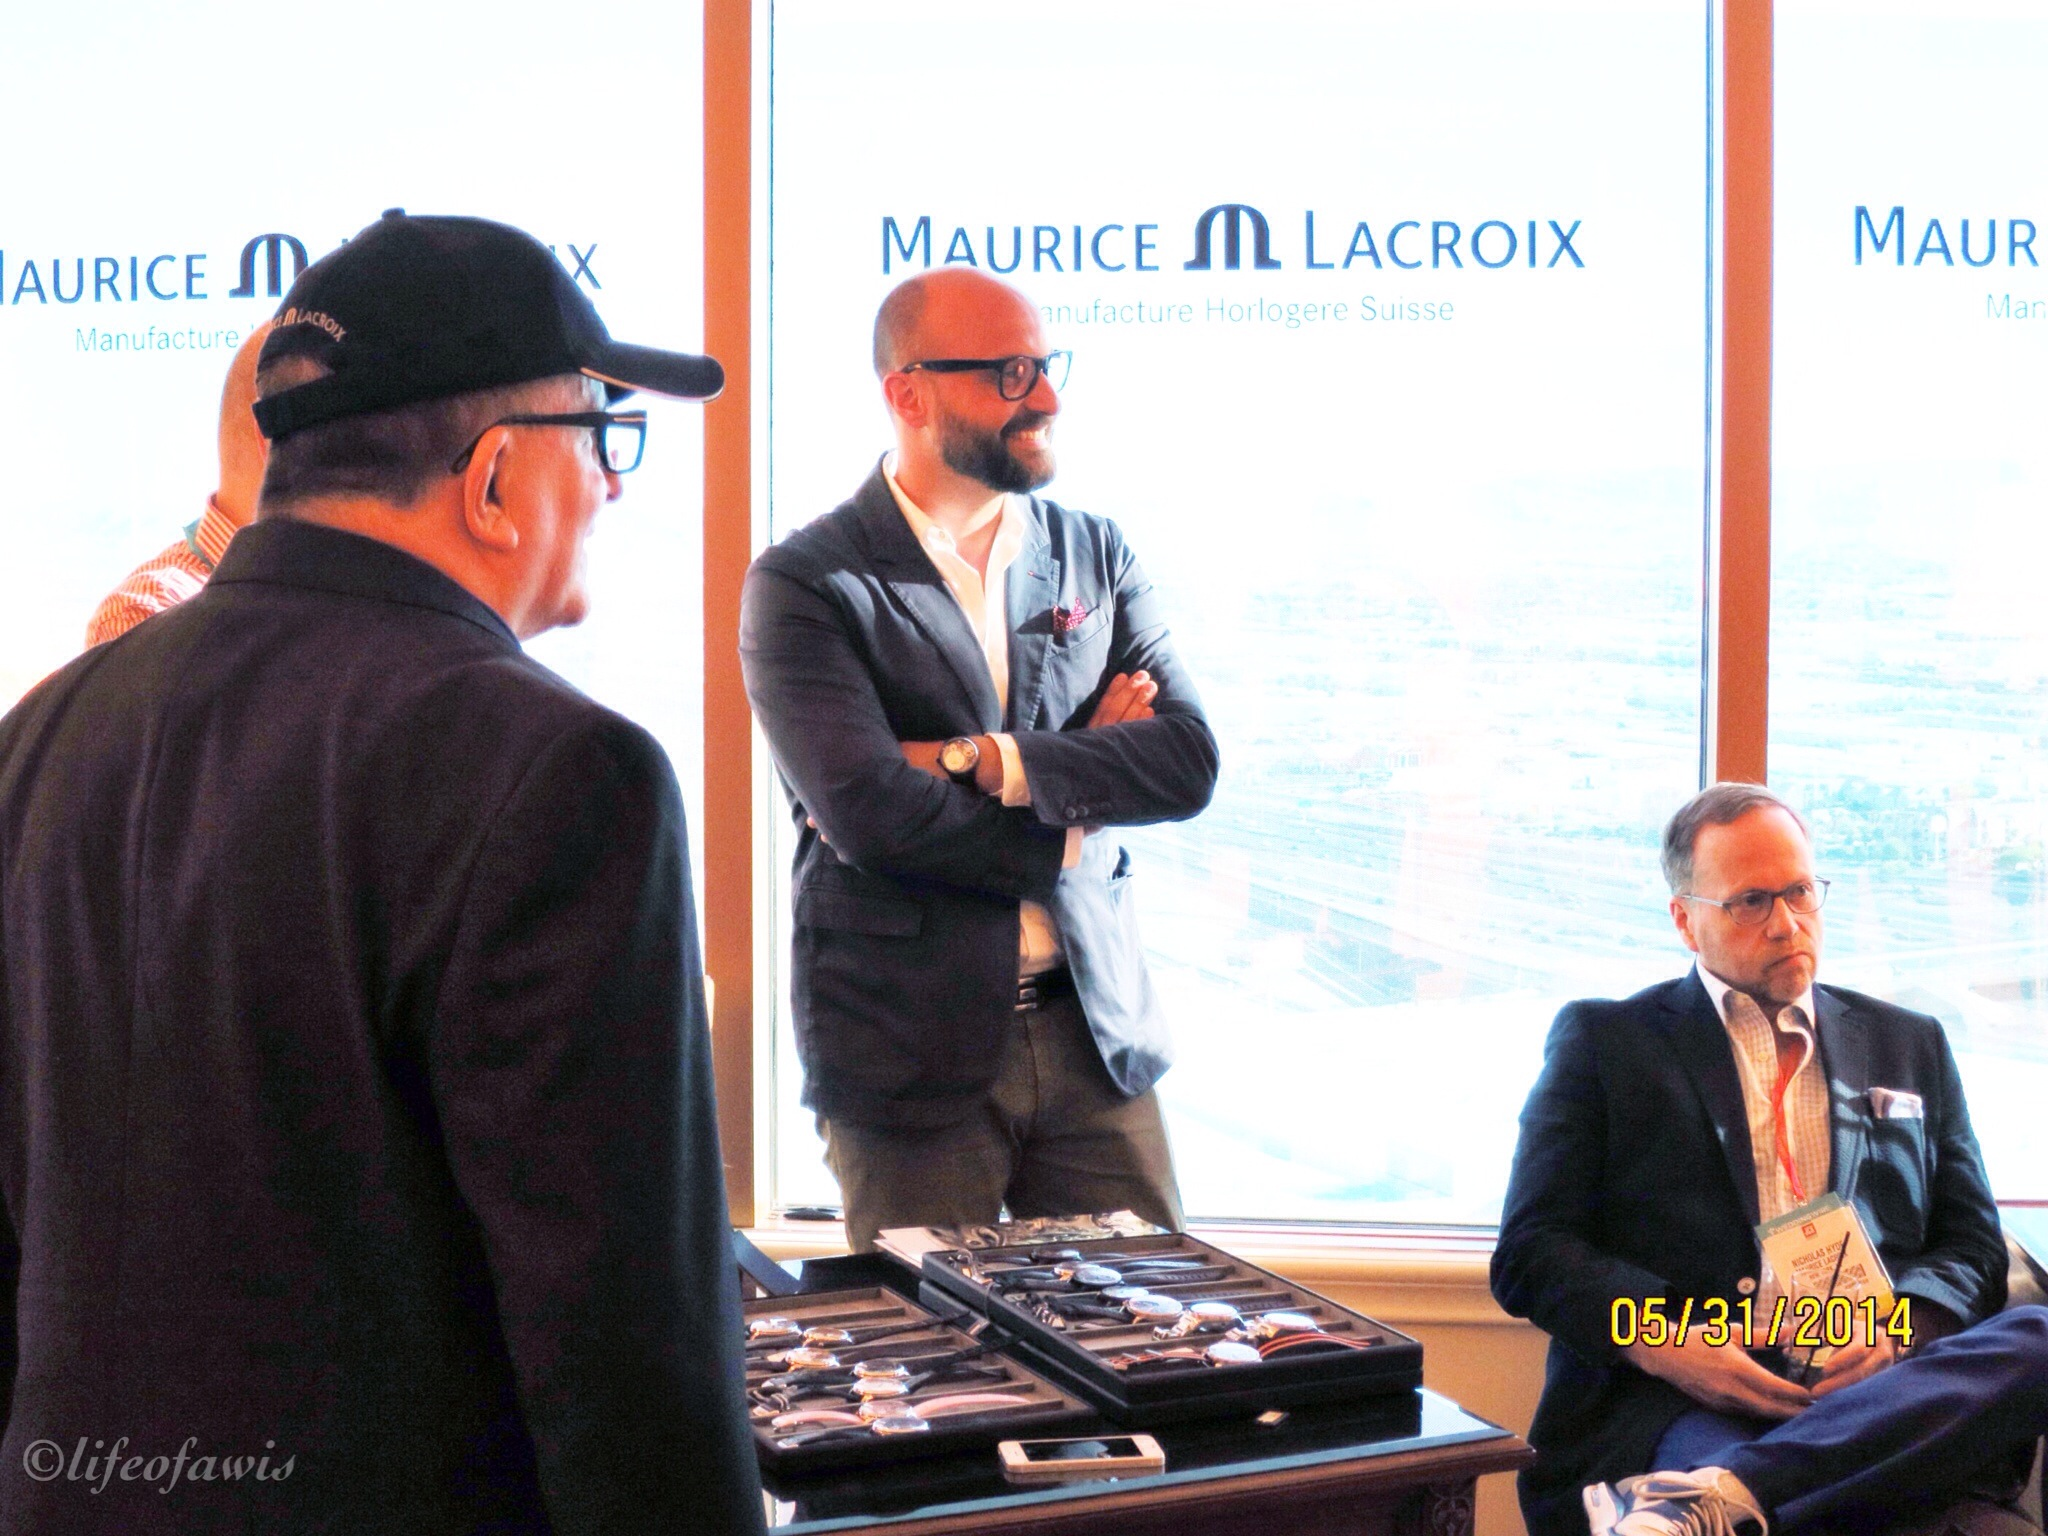 Sandro Reginelli, Product and Marketing Director for Maurice Lacroix.